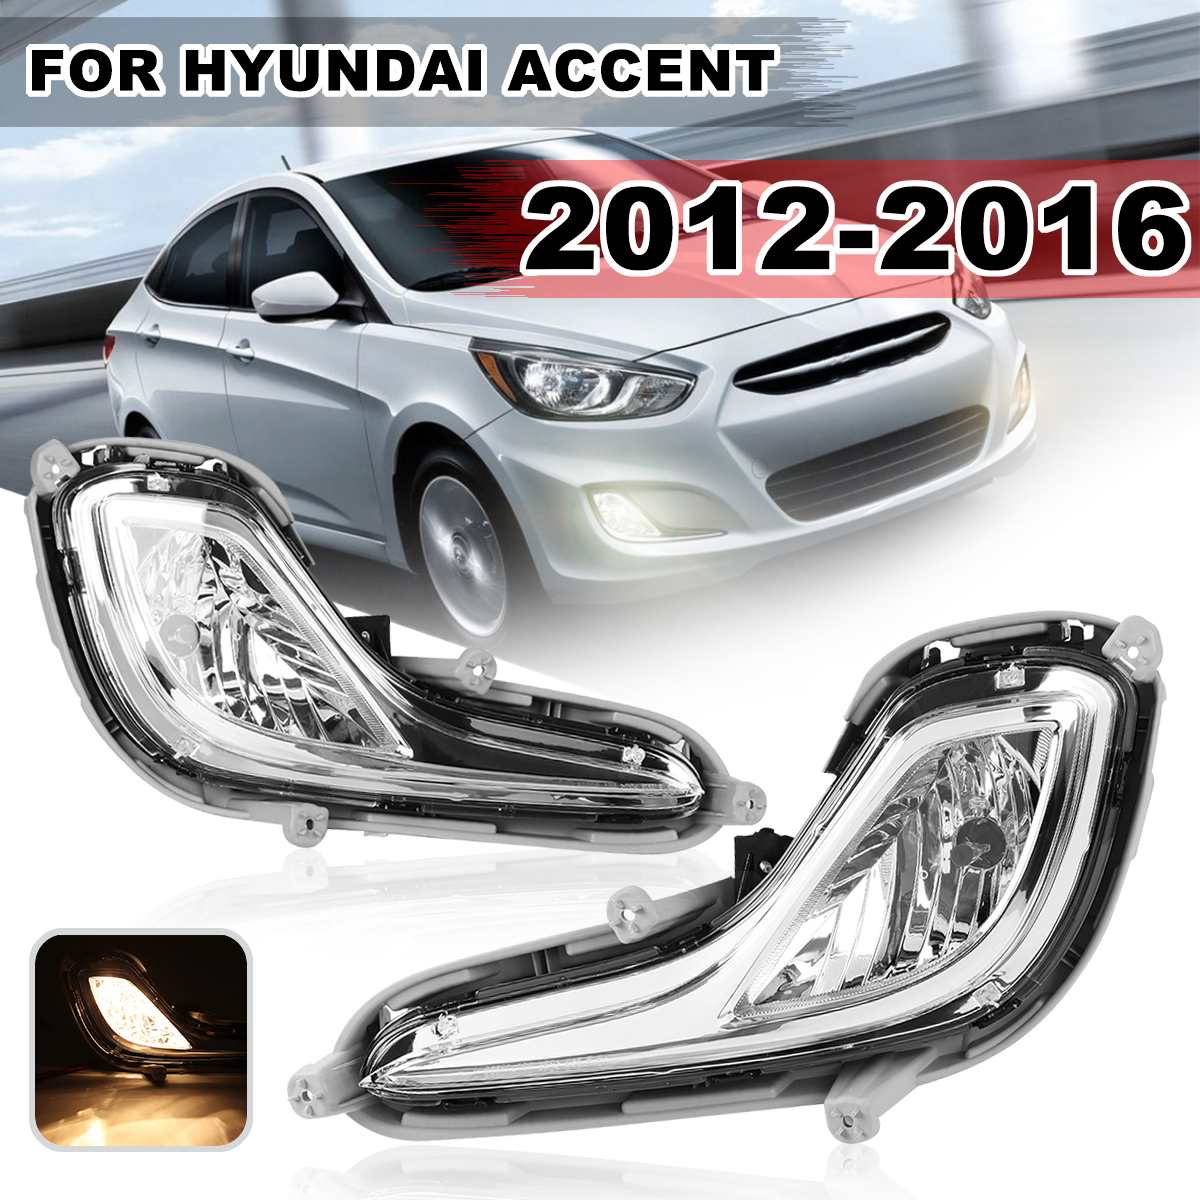 Pair Front Clear Bumper Fog Lamp Lights Daytime Running Light With Bulbs For Hyundai Accent 2012 2013 2014Pair Front Clear Bumper Fog Lamp Lights Daytime Running Light With Bulbs For Hyundai Accent 2012 2013 2014